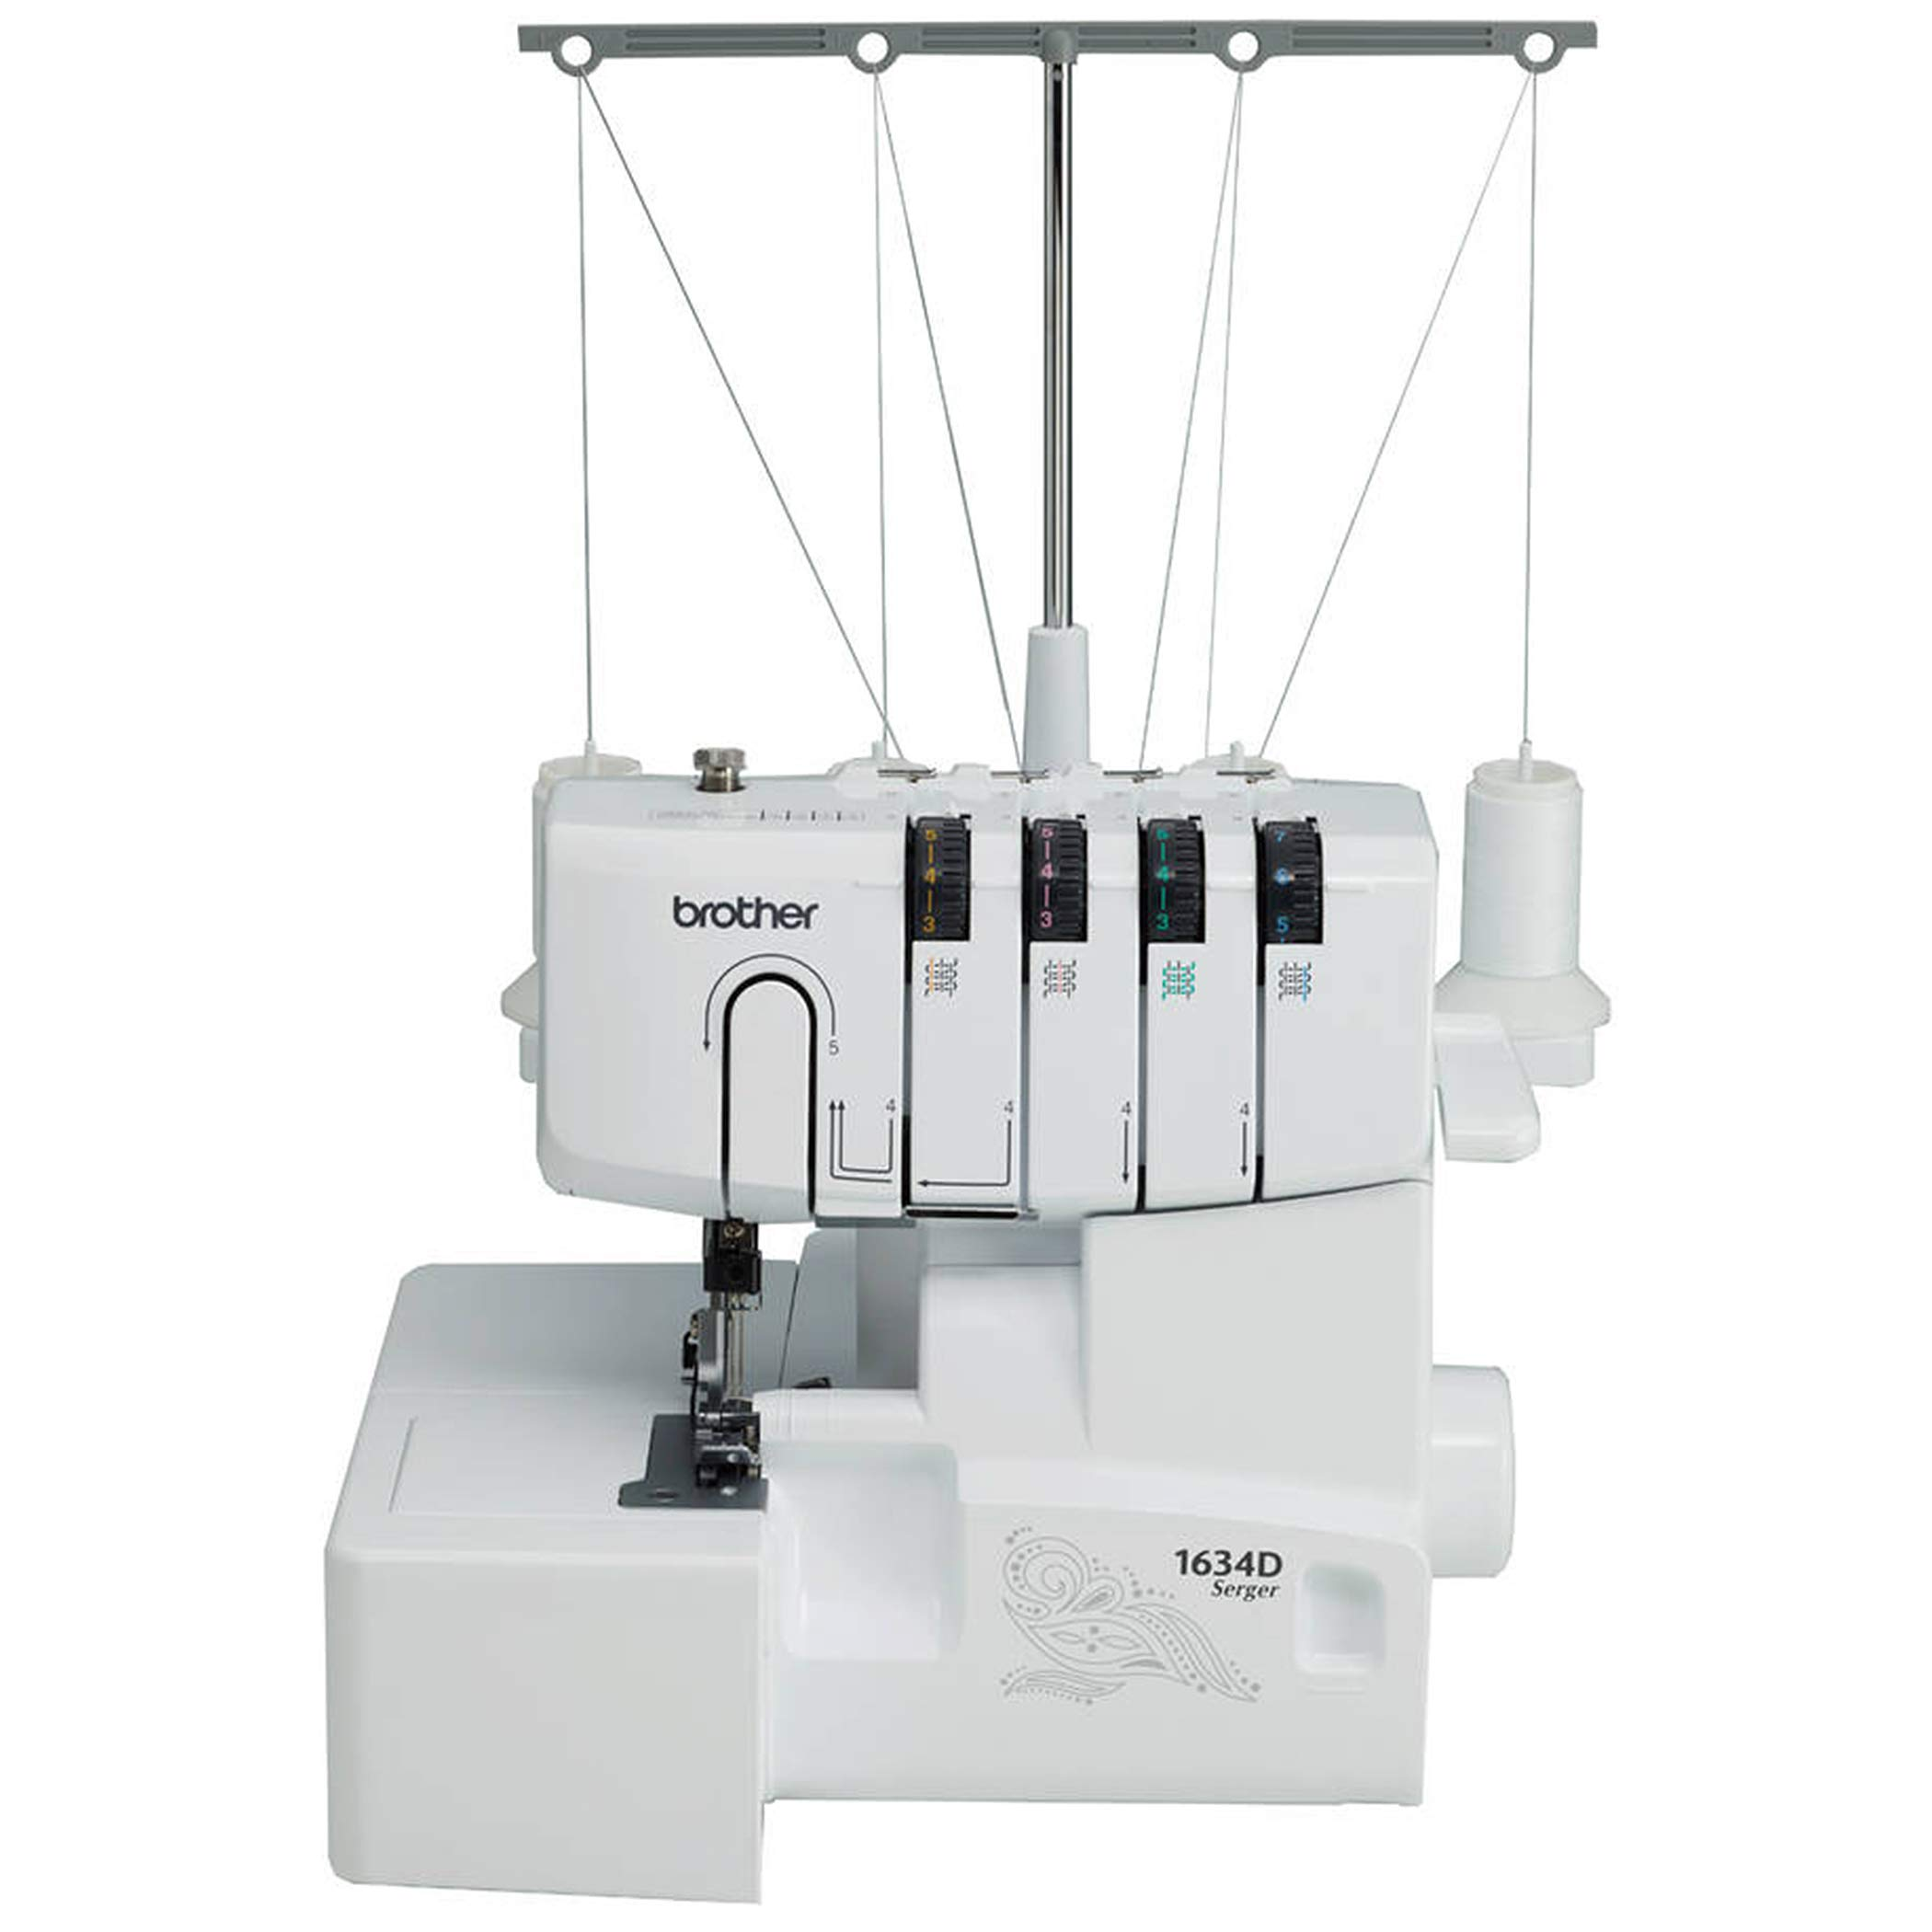 Brother R1634D 3 or 4 Thread Serger with Differential Feed, White (Renewed) by Brother